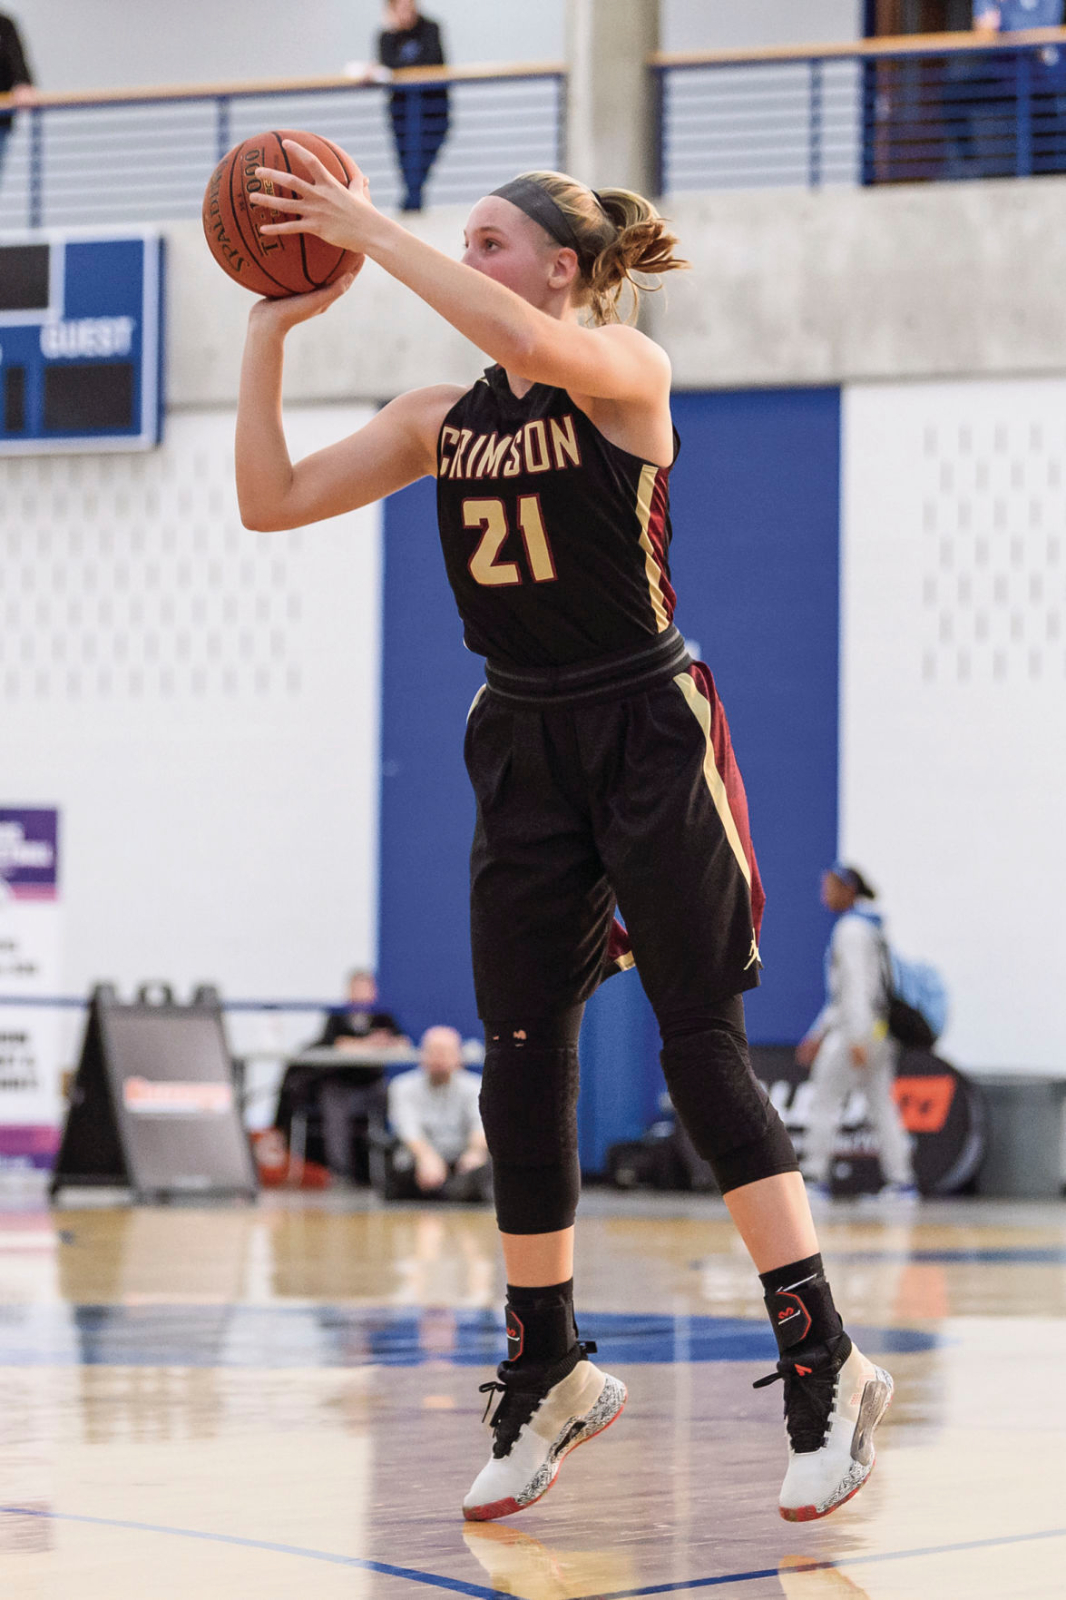 Girls Basketball: Team excited about new season